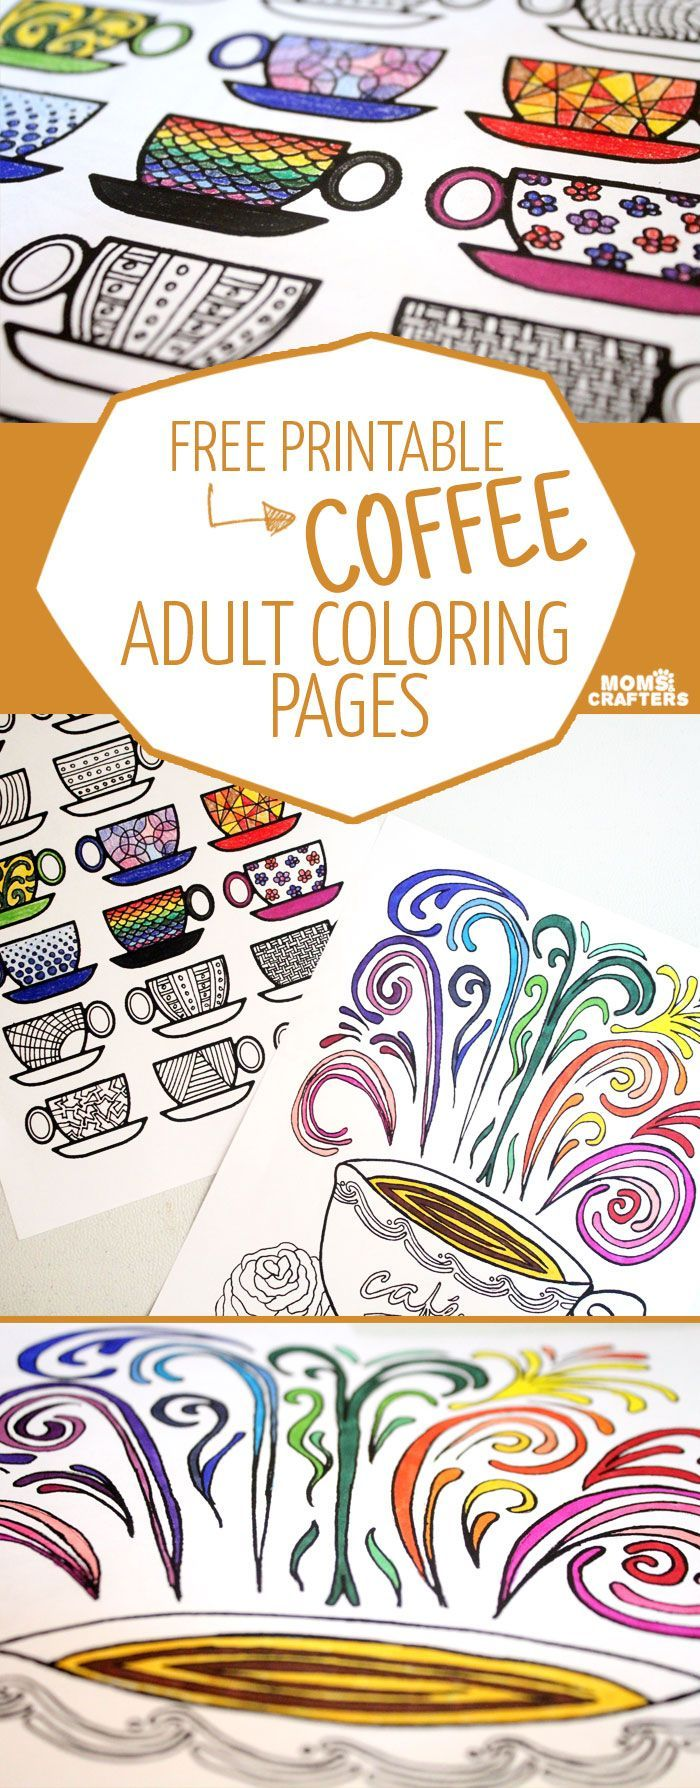 Color book party mn - Best 25 Coloring Books Ideas On Pinterest Colour Book Adult Coloring And Adult Coloring Pages